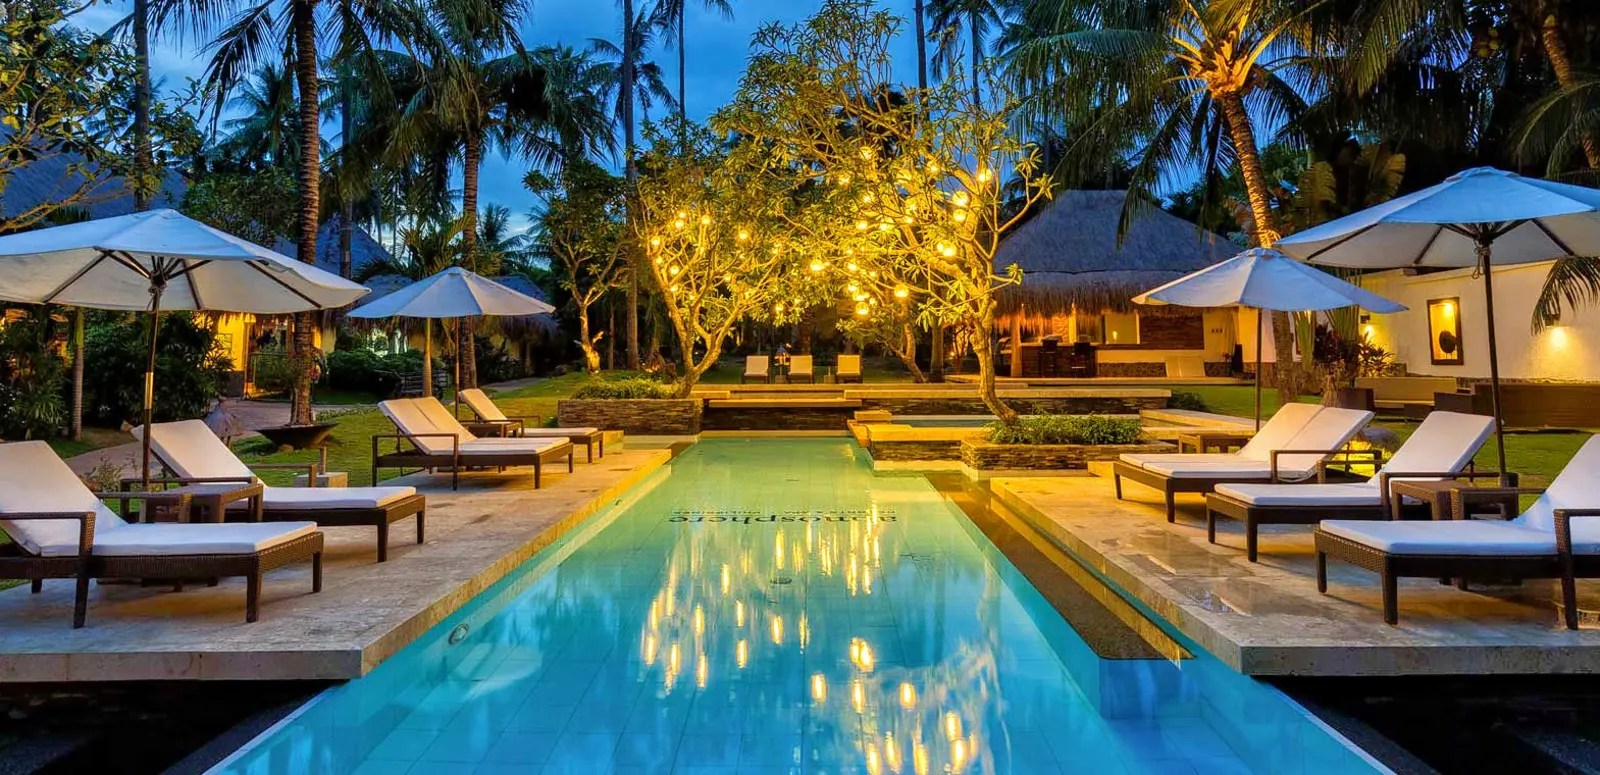 Farmhouse Near Bangalore 20 Best Budget Resorts Near Bangalore 2019 With Photos